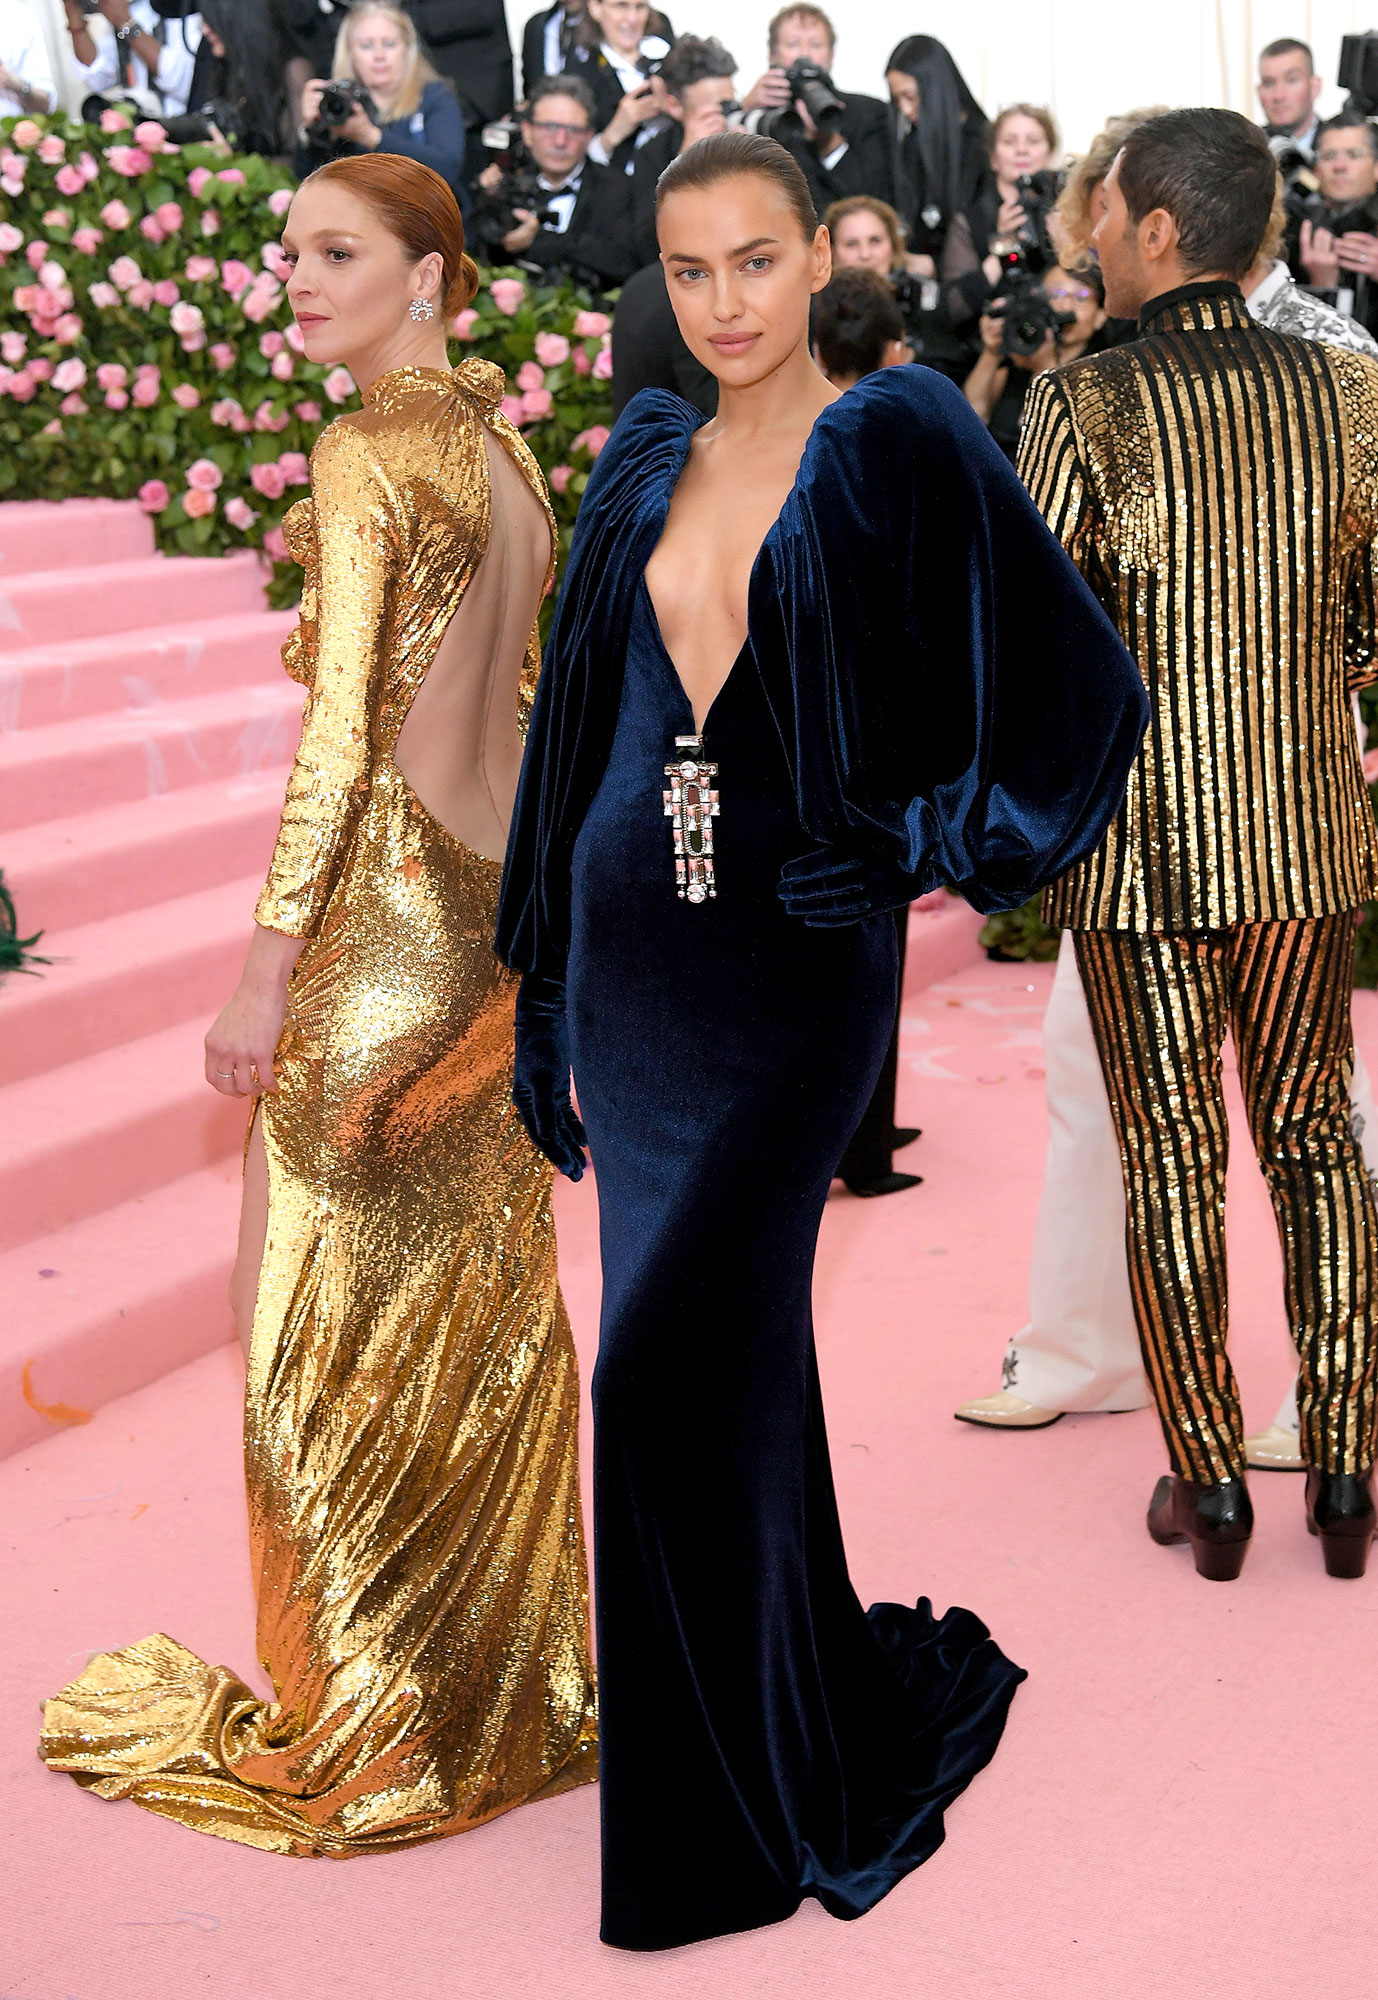 Bradley Cooper Did Not Attend the Met Gala 2019 With Irina Shayk - Irina Shayk attends The 2019 Met Gala Celebrating Camp: Notes on Fashion at Metropolitan Museum of Art on May 06, 2019 in New York City.